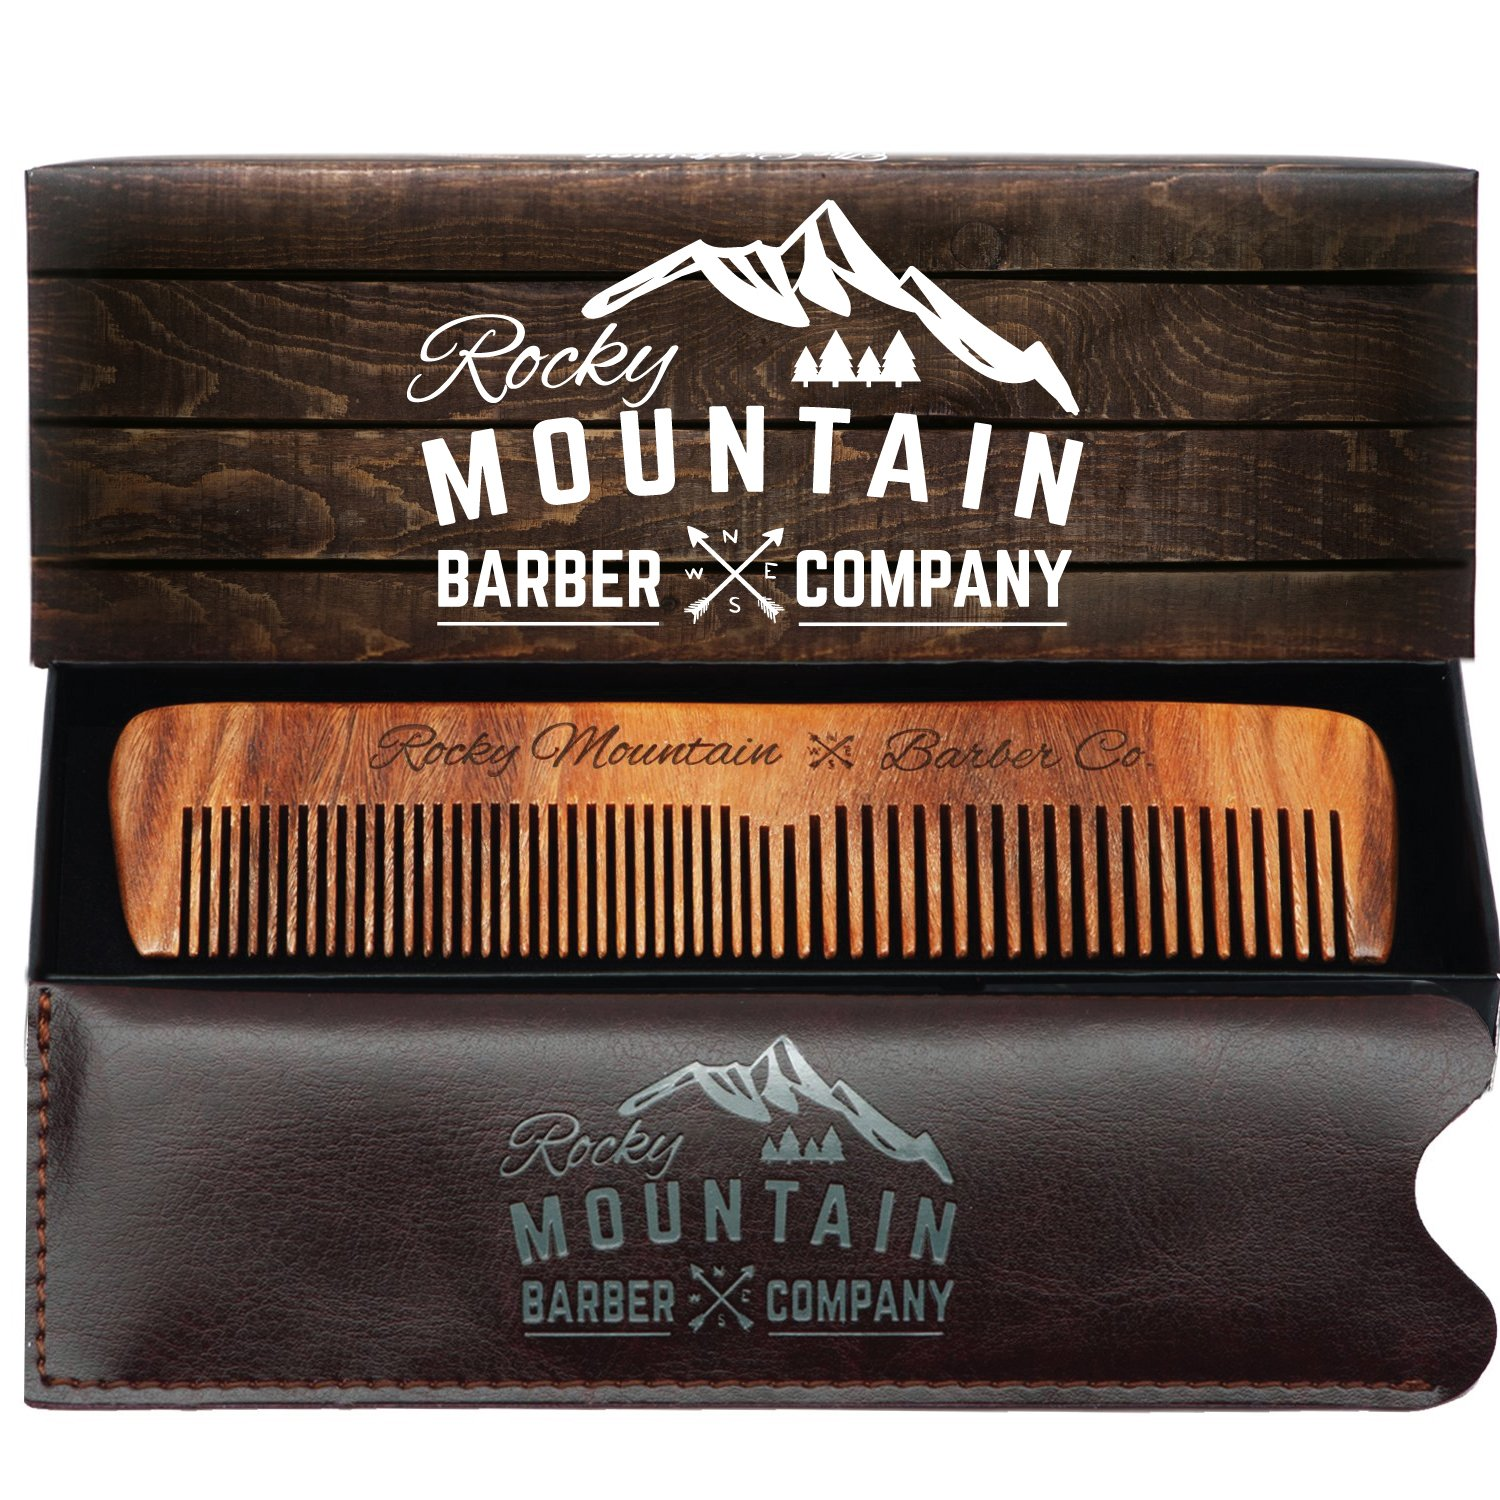 Hair Comb - Wood with Anti-Static & No Snag with Fine and Medium Tooth for Head Hair, Beard, Mustache with Premium Carrying Pouch in High Quality Design in Gift Box by Rocky Mountain Rocky Mountain Barber Company HC-30